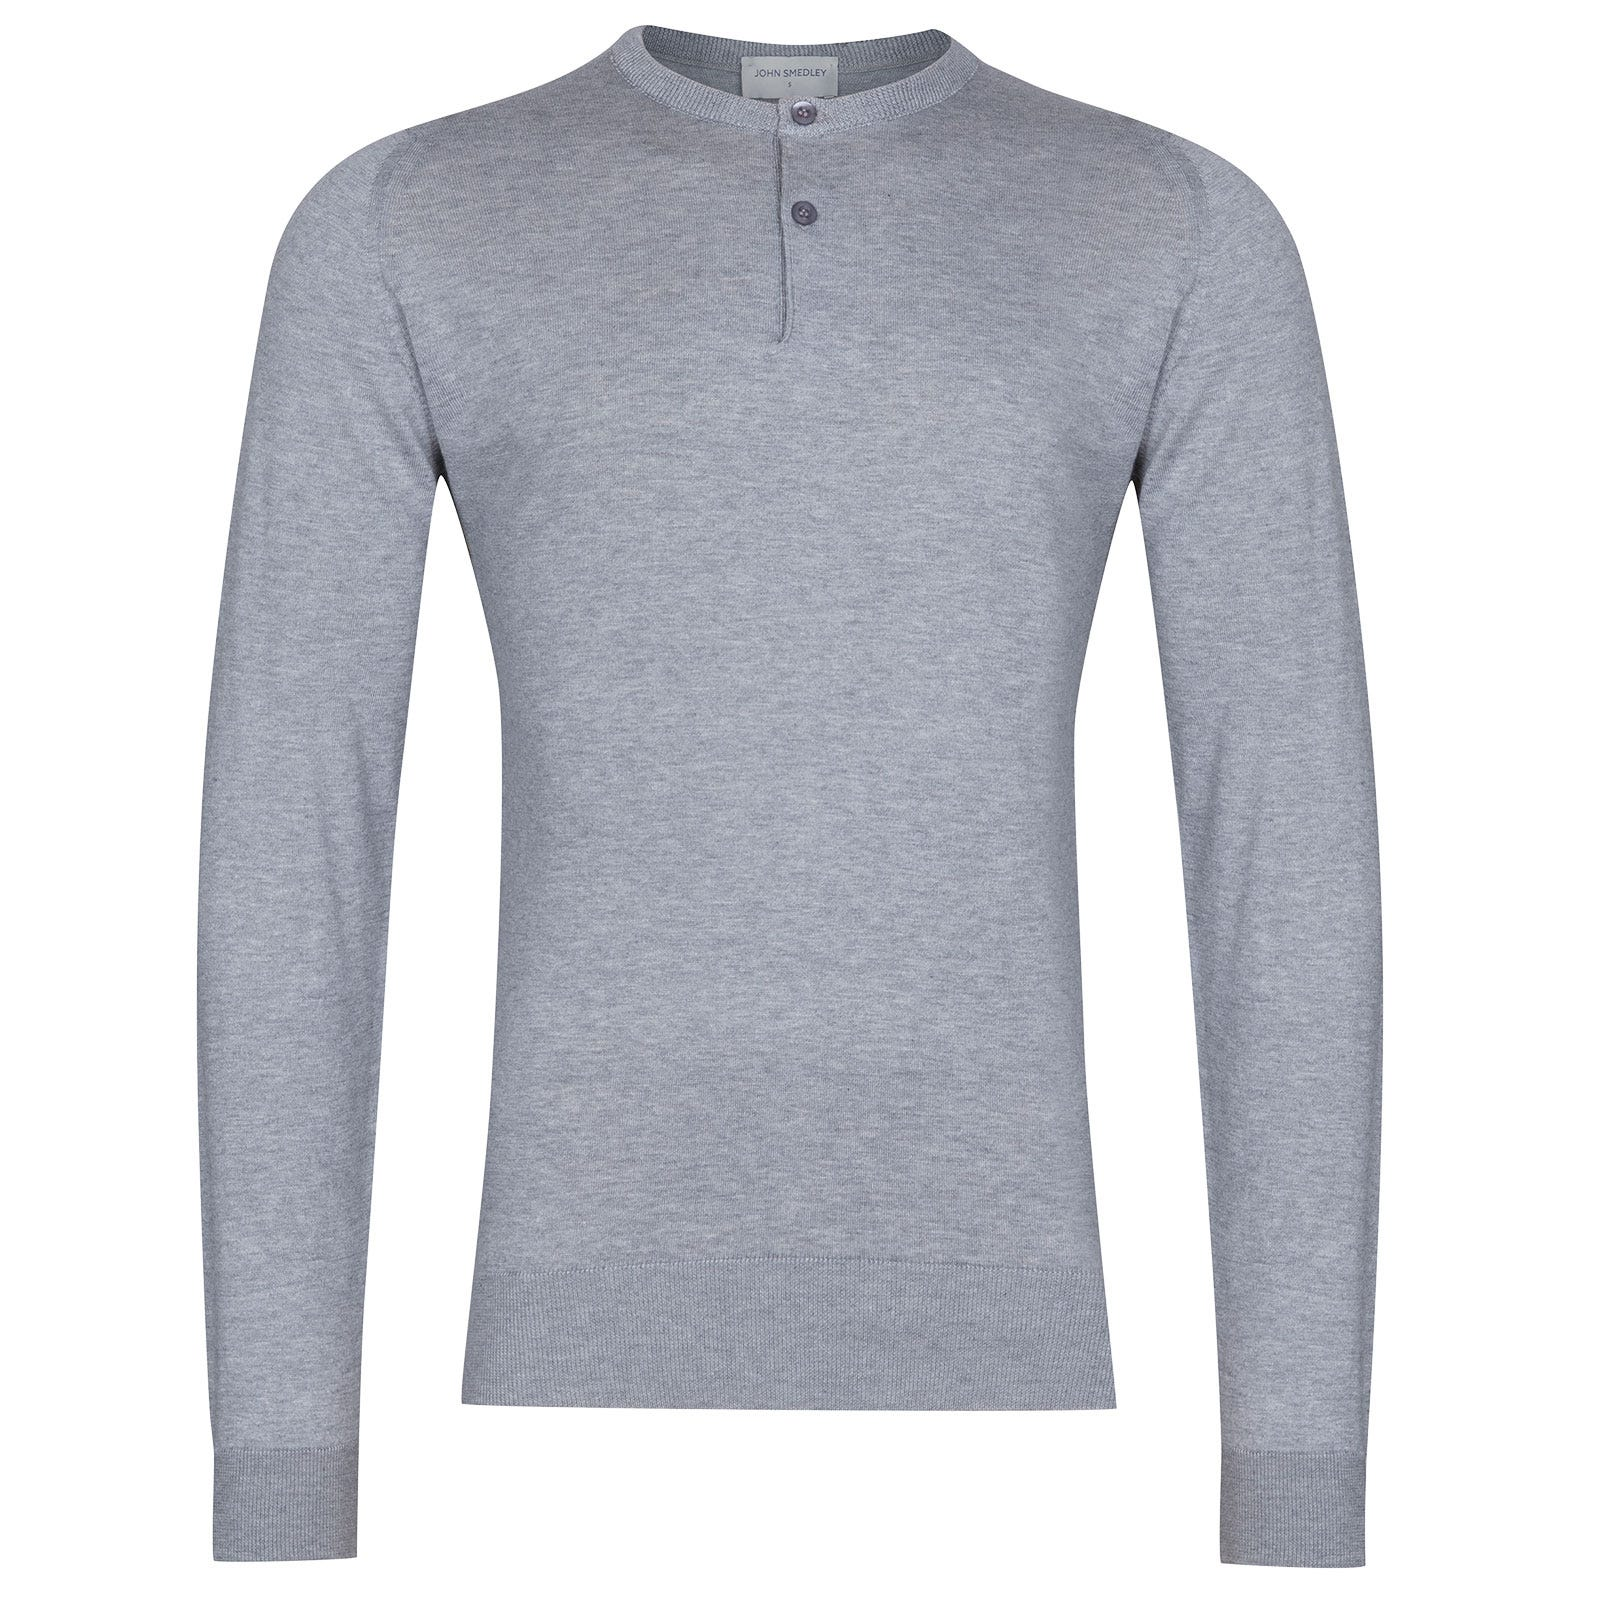 John Smedley Wembury Sea Island Cotton Pullover in Silver-L